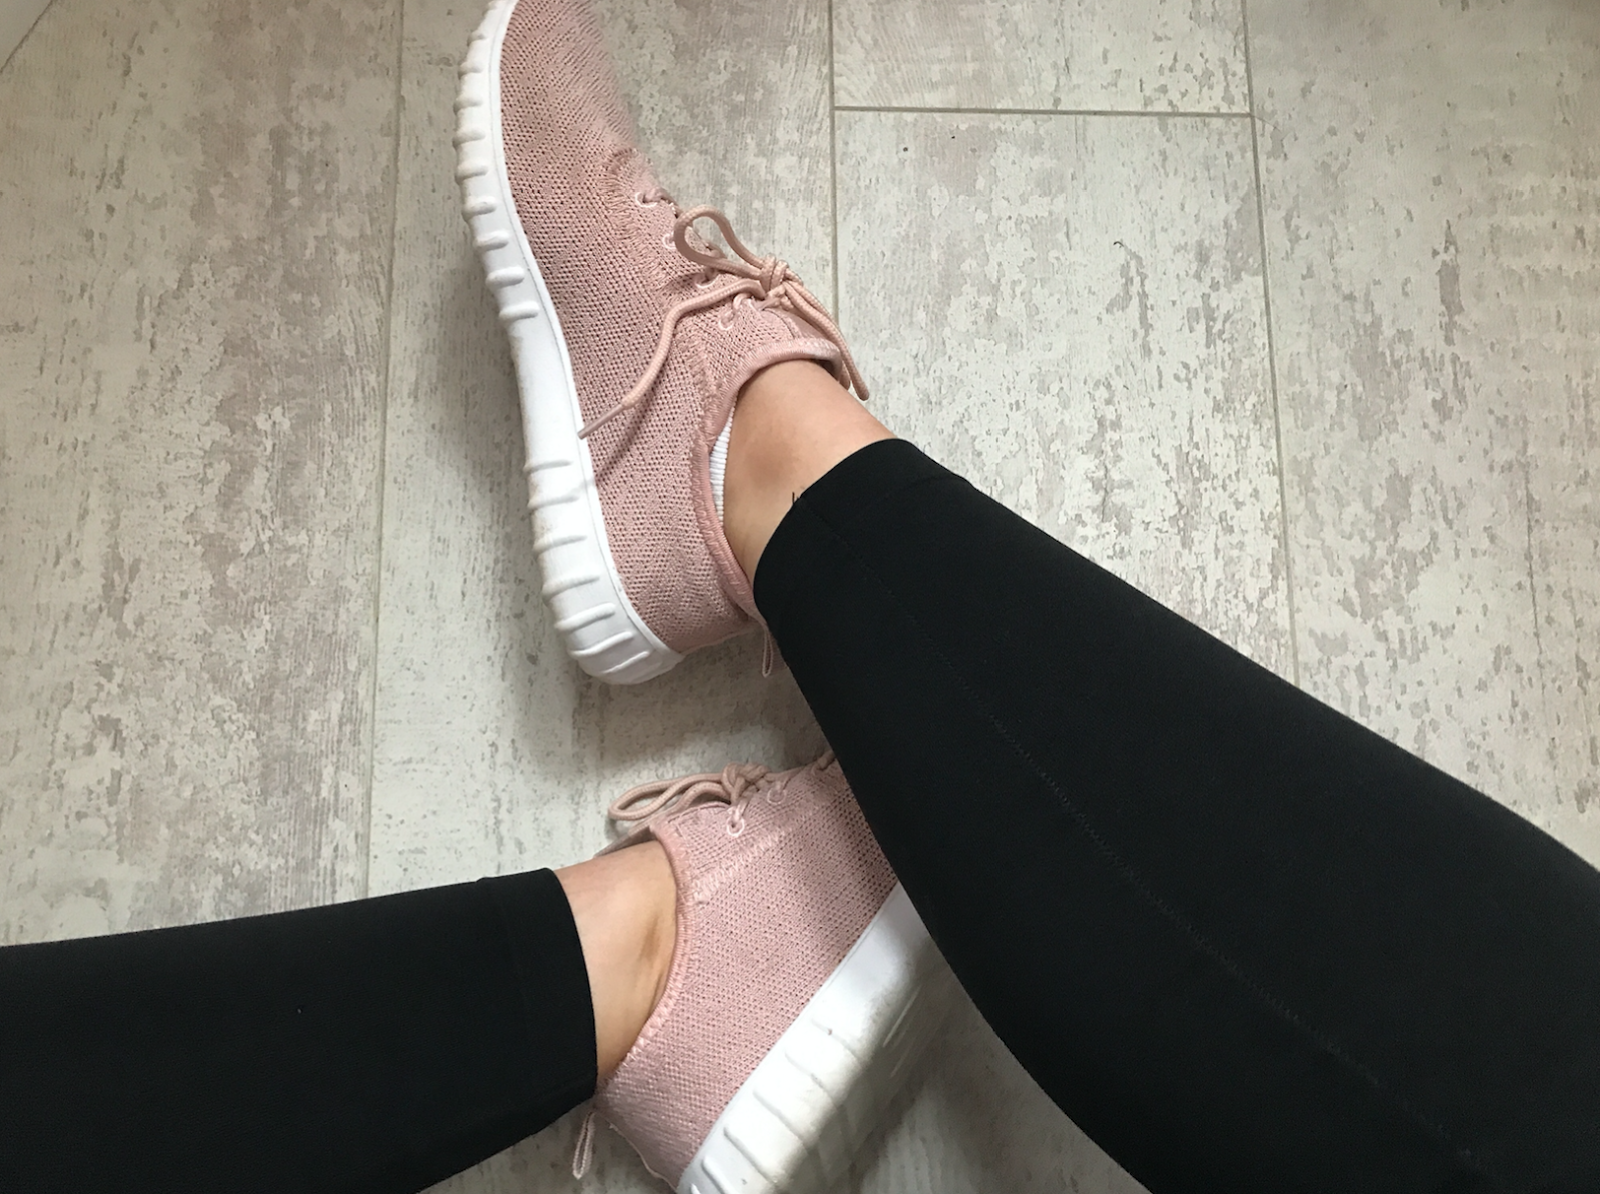 e7a919157e Pink Yeezy Style Trainers - Primark | trainers | Primark trainers ...